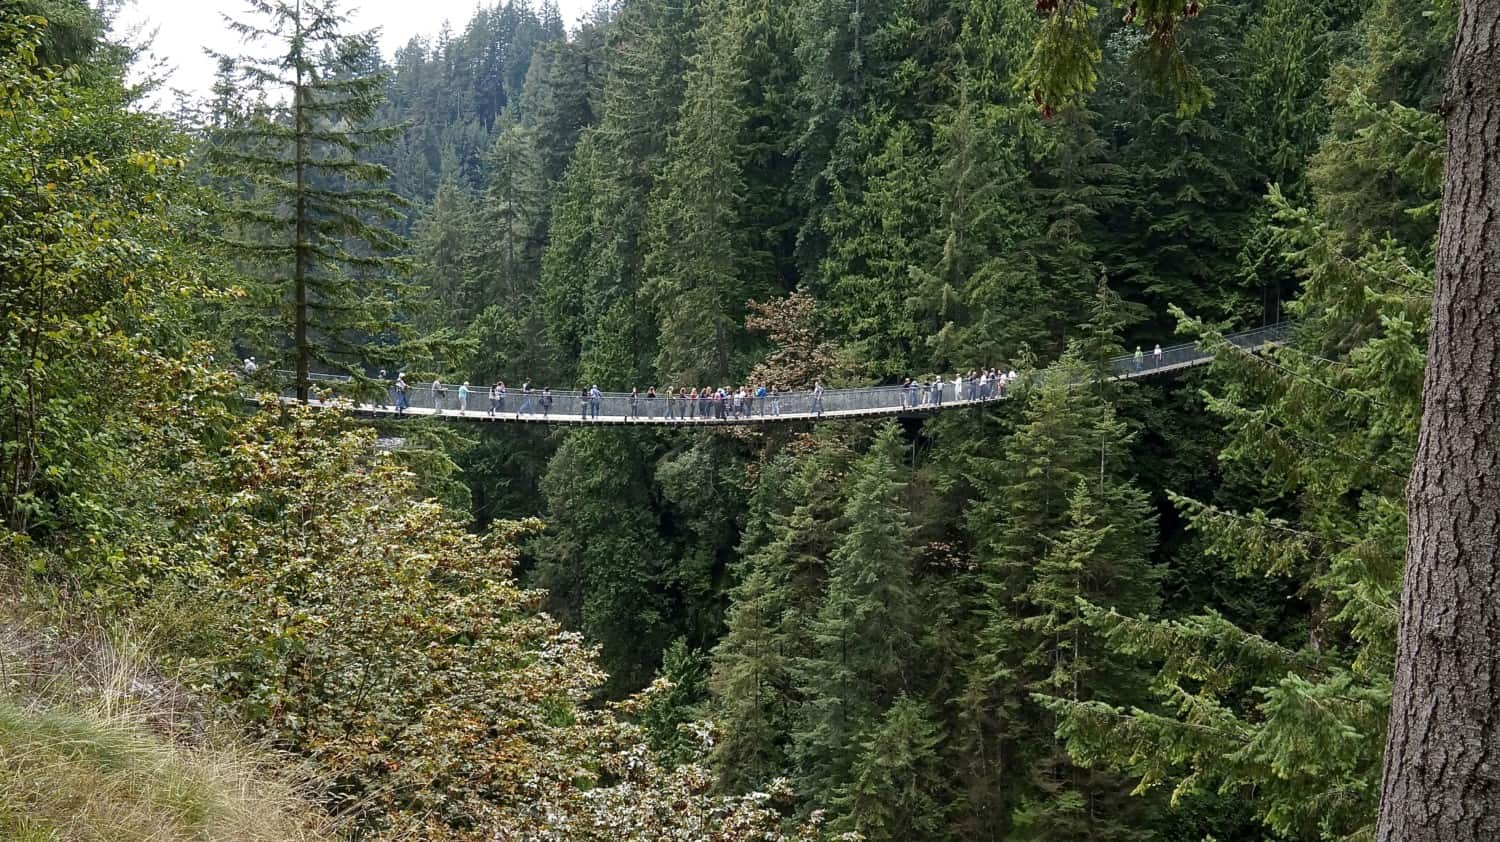 View of the dog friendly Capilano Suspension Bridge in Vancouver, BC